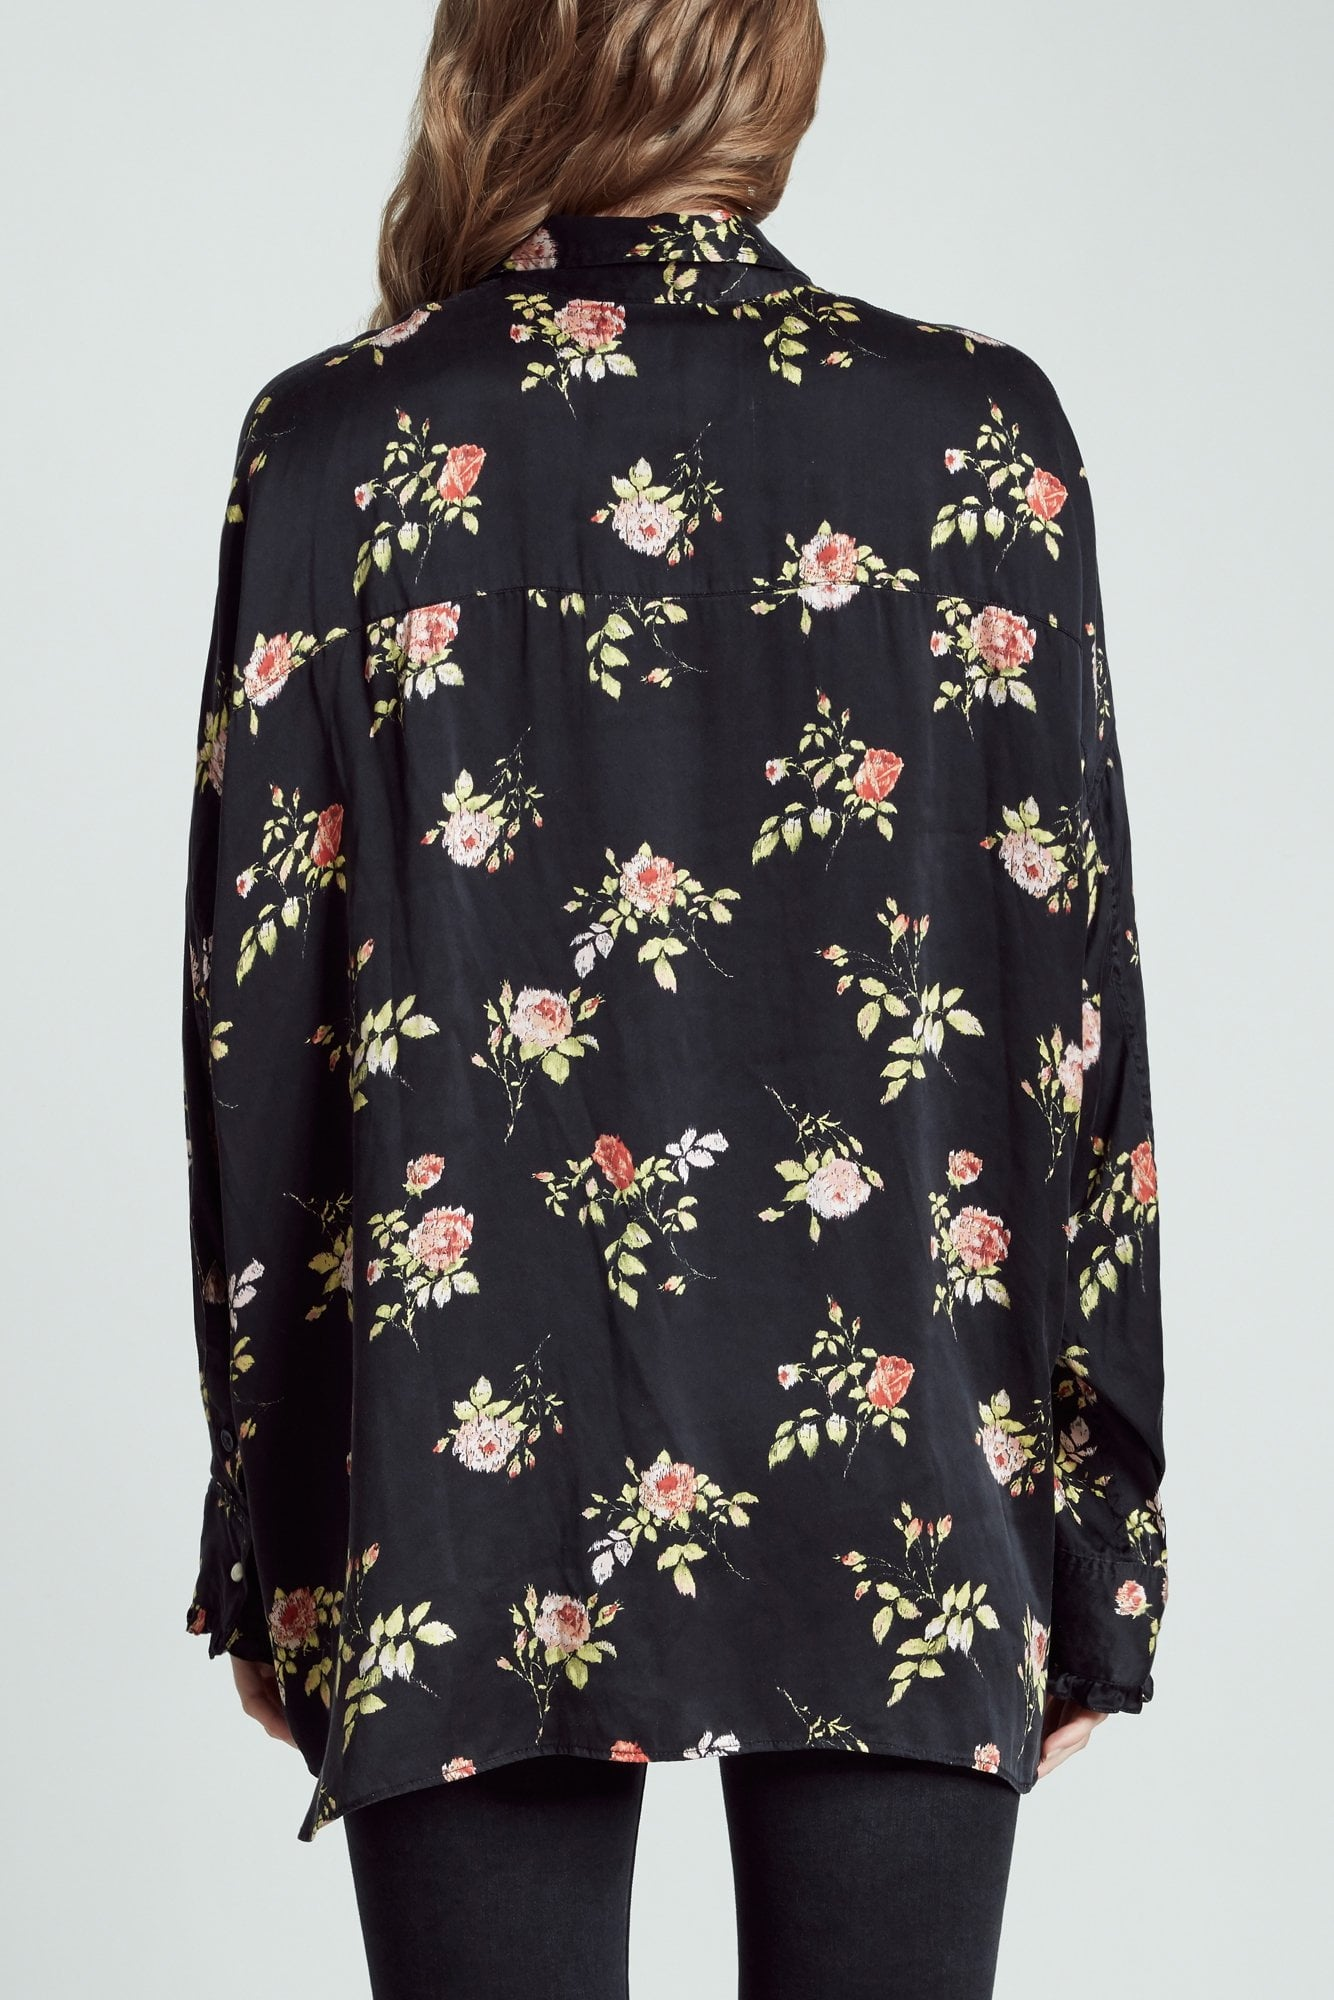 Drop Neck Tuxedo Shirt- Black Floral